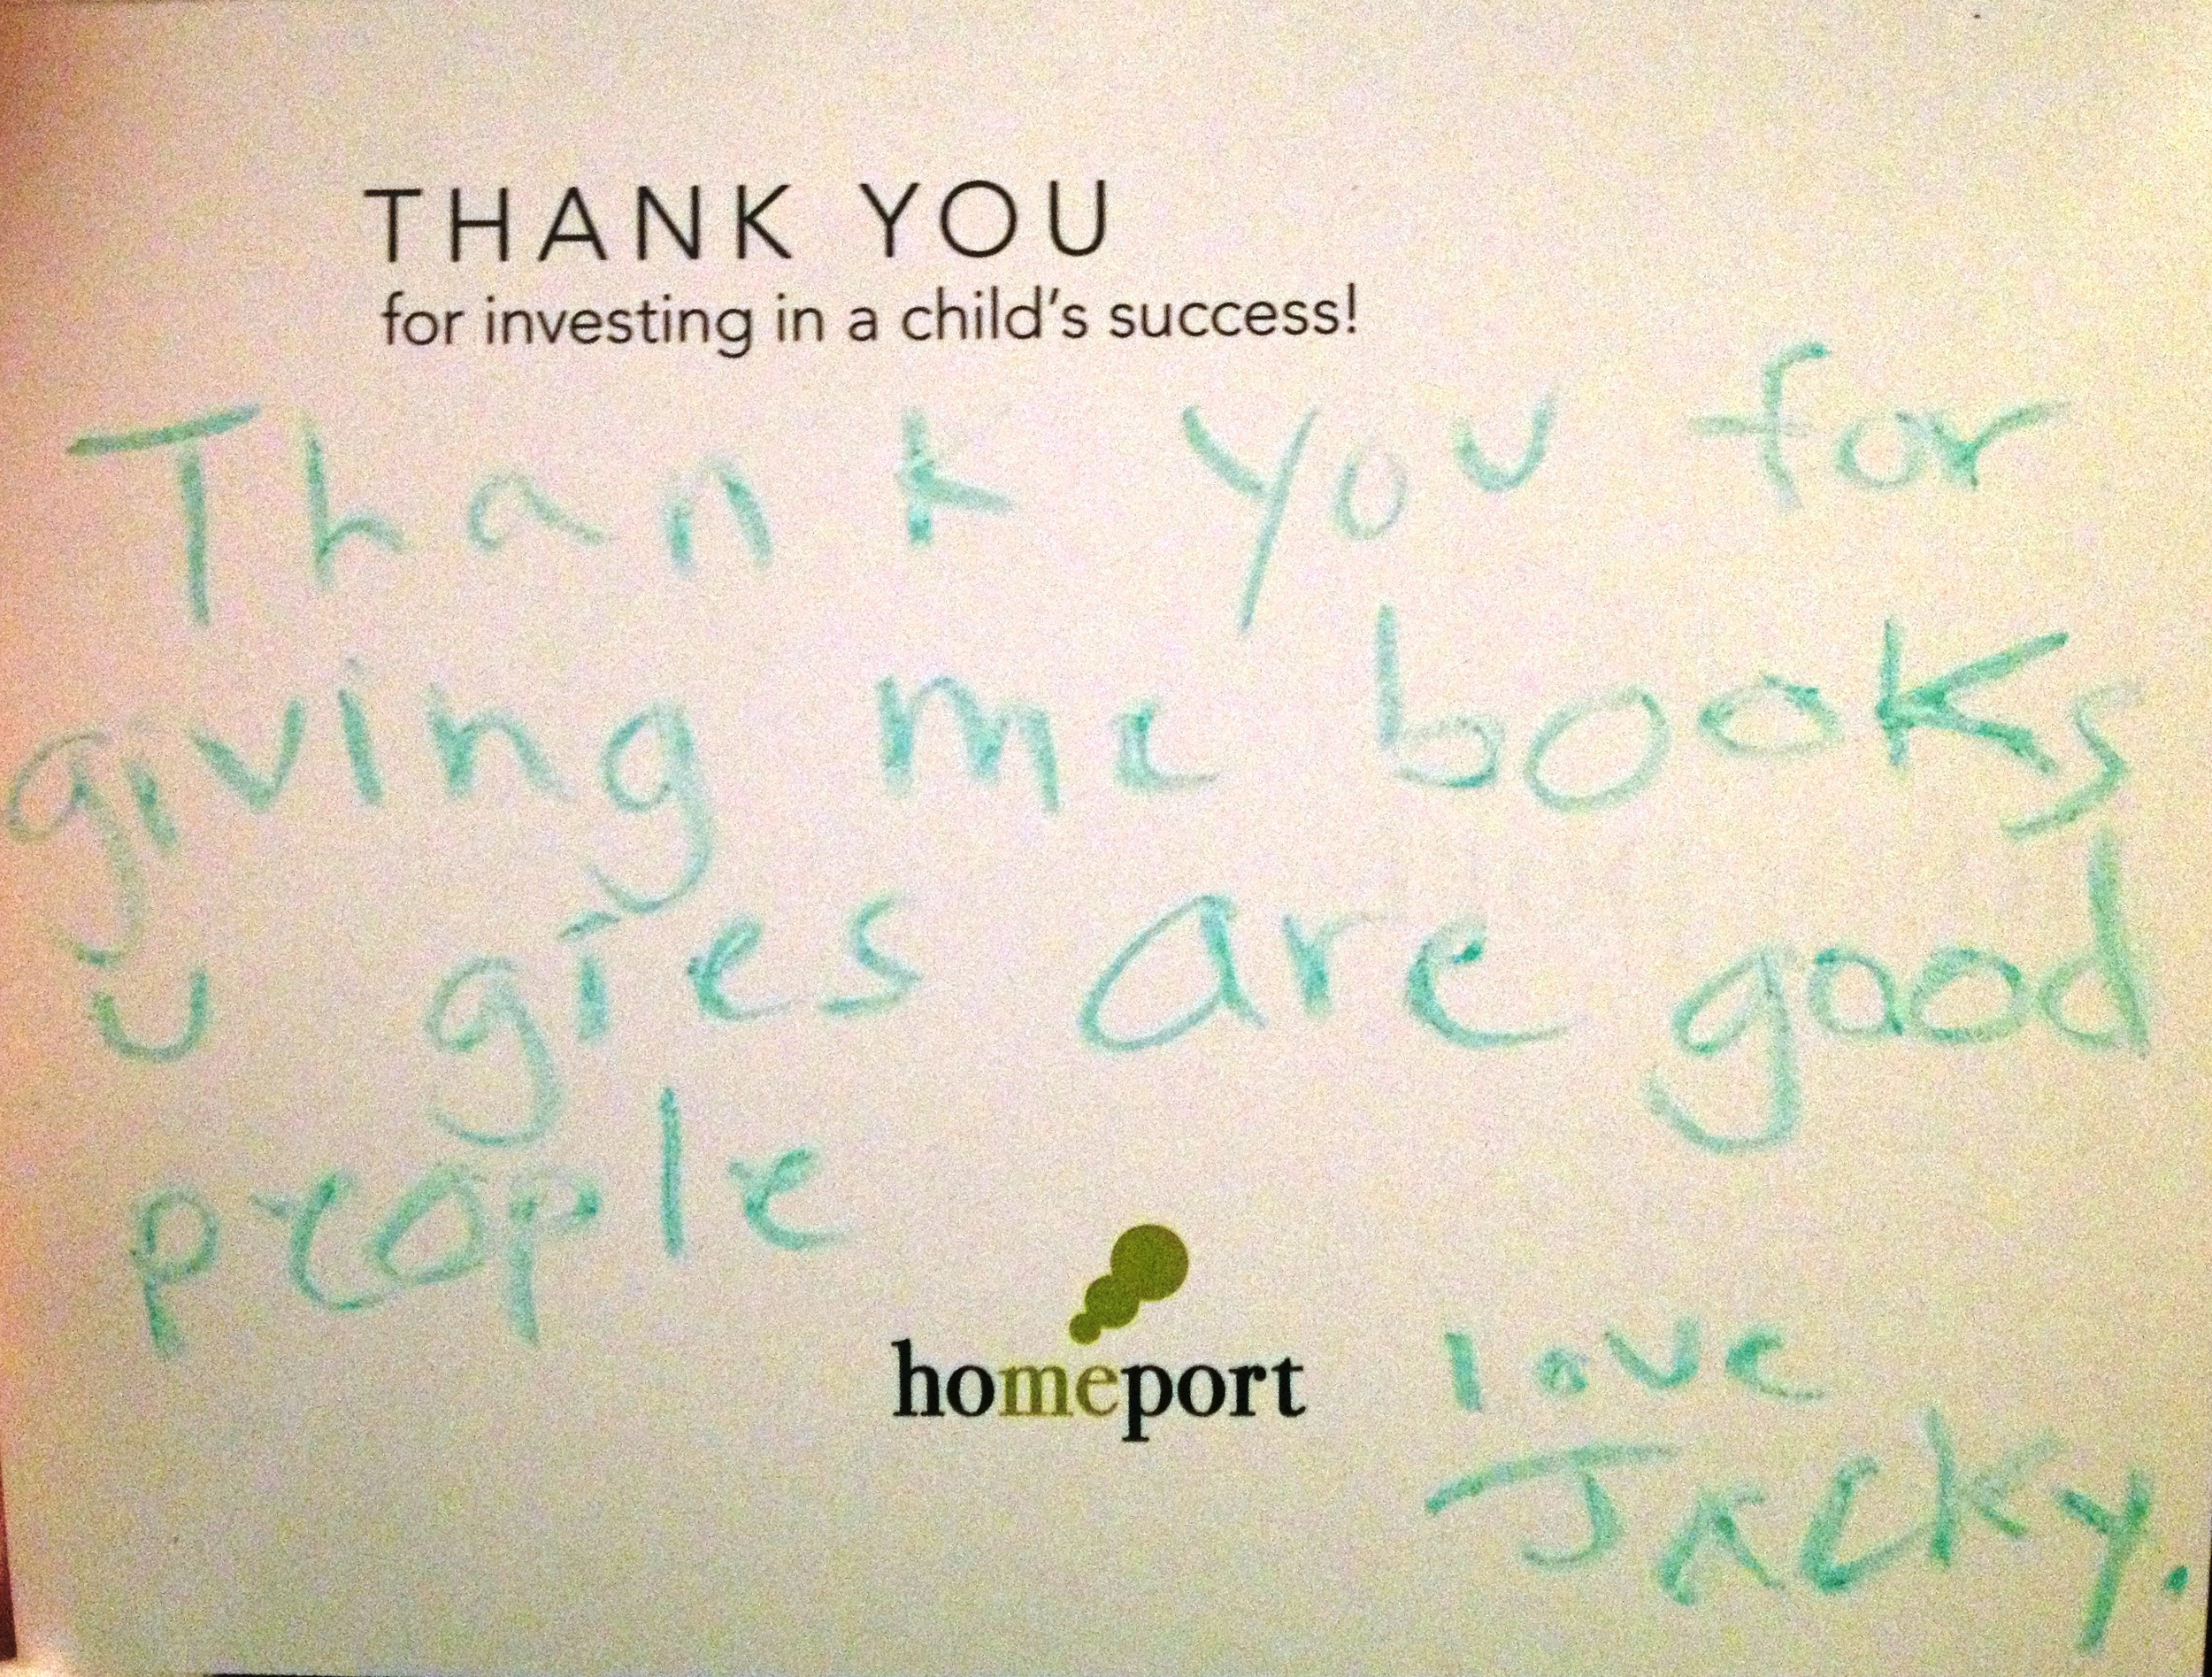 Thank you letter from Homeport resident in 2013